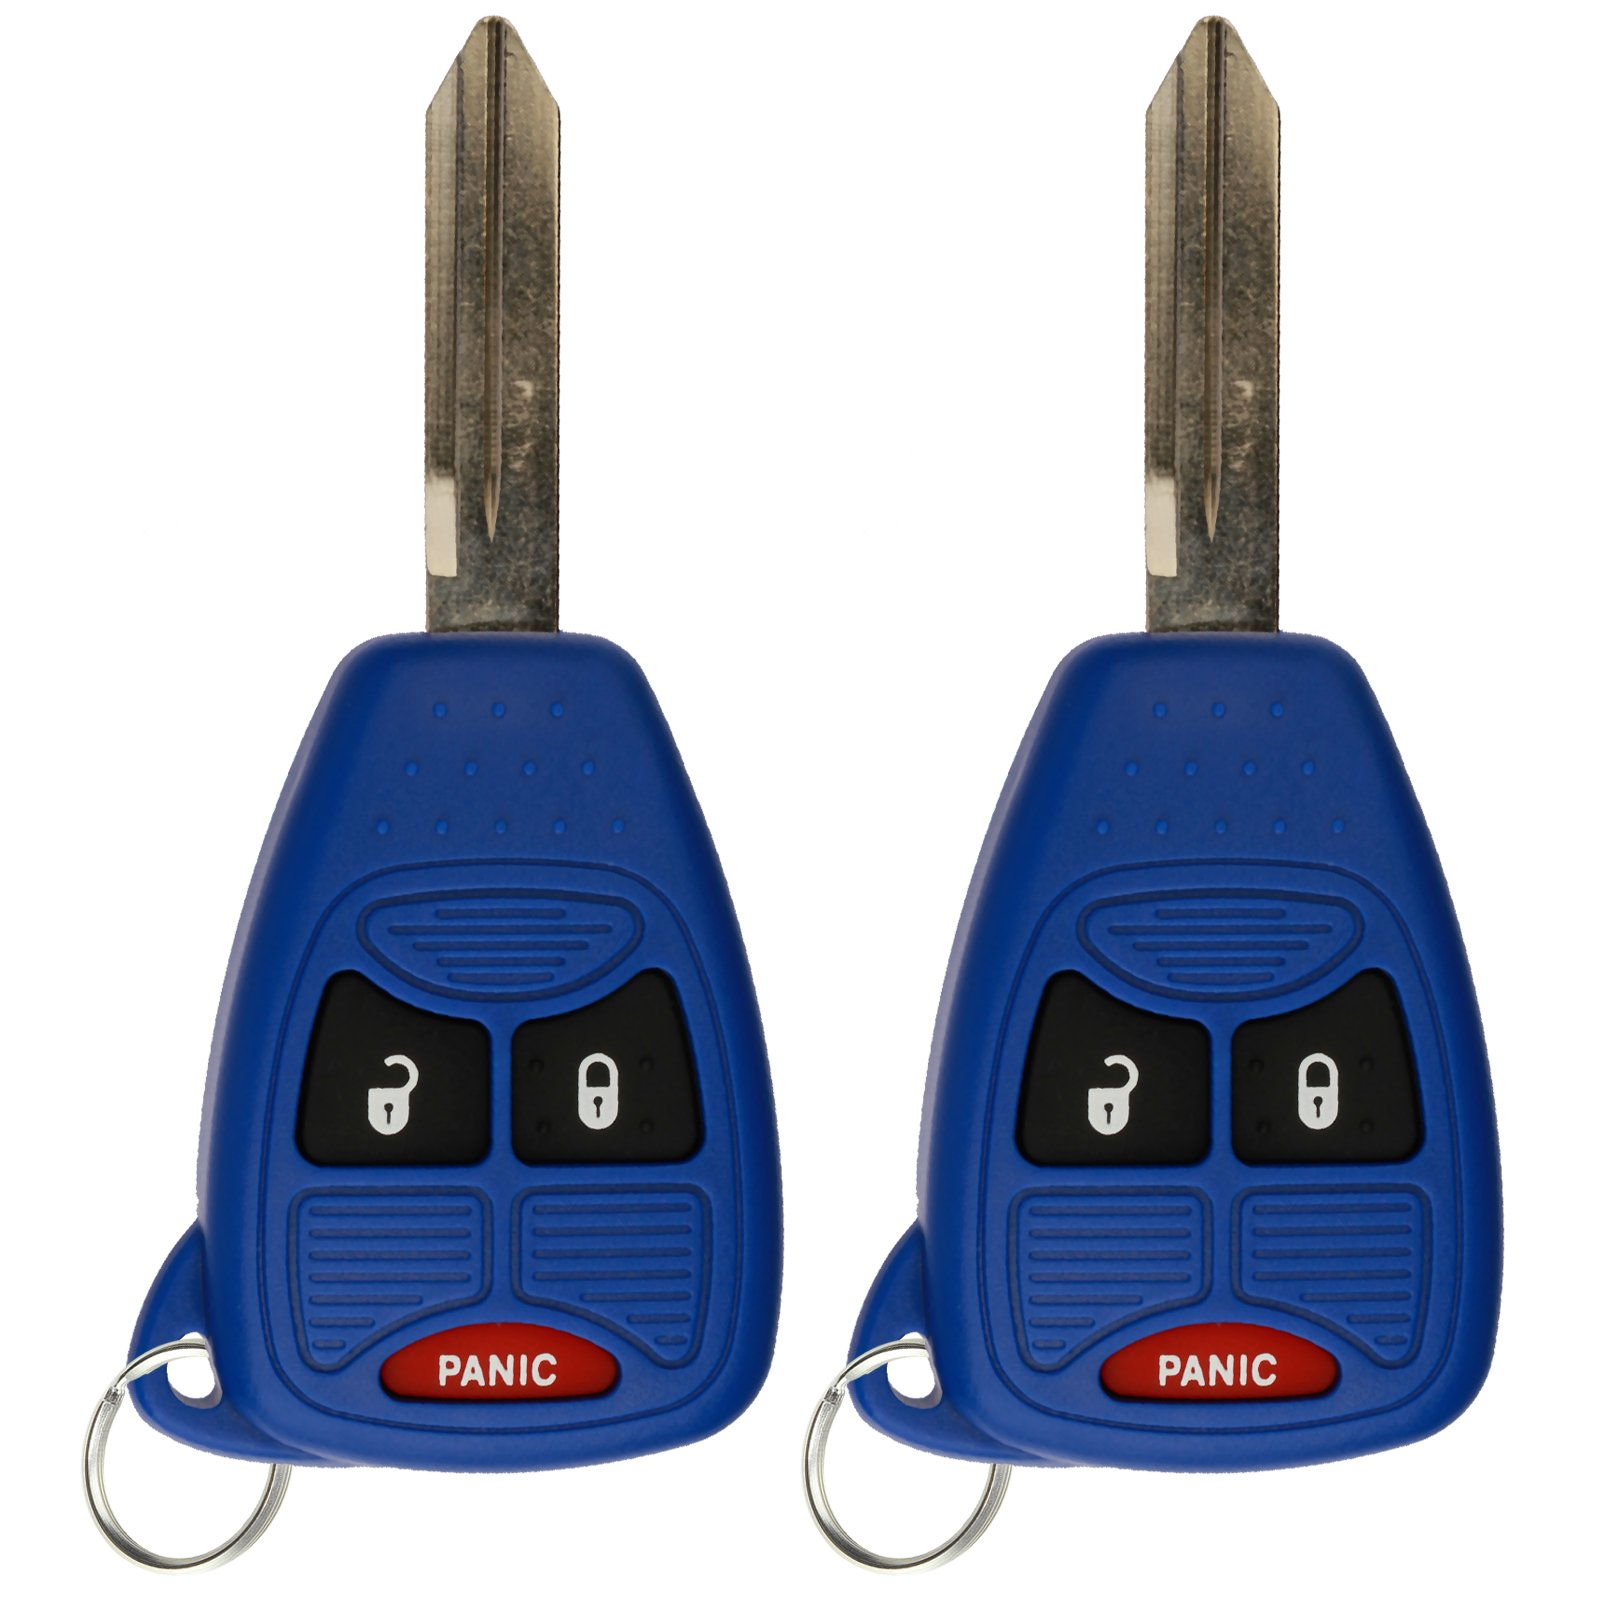 KeylessOption Keyless Entry Remote Control Car Key Fob Replacement for OHT692427AA KOBDT04A Blue (Pack of 2)